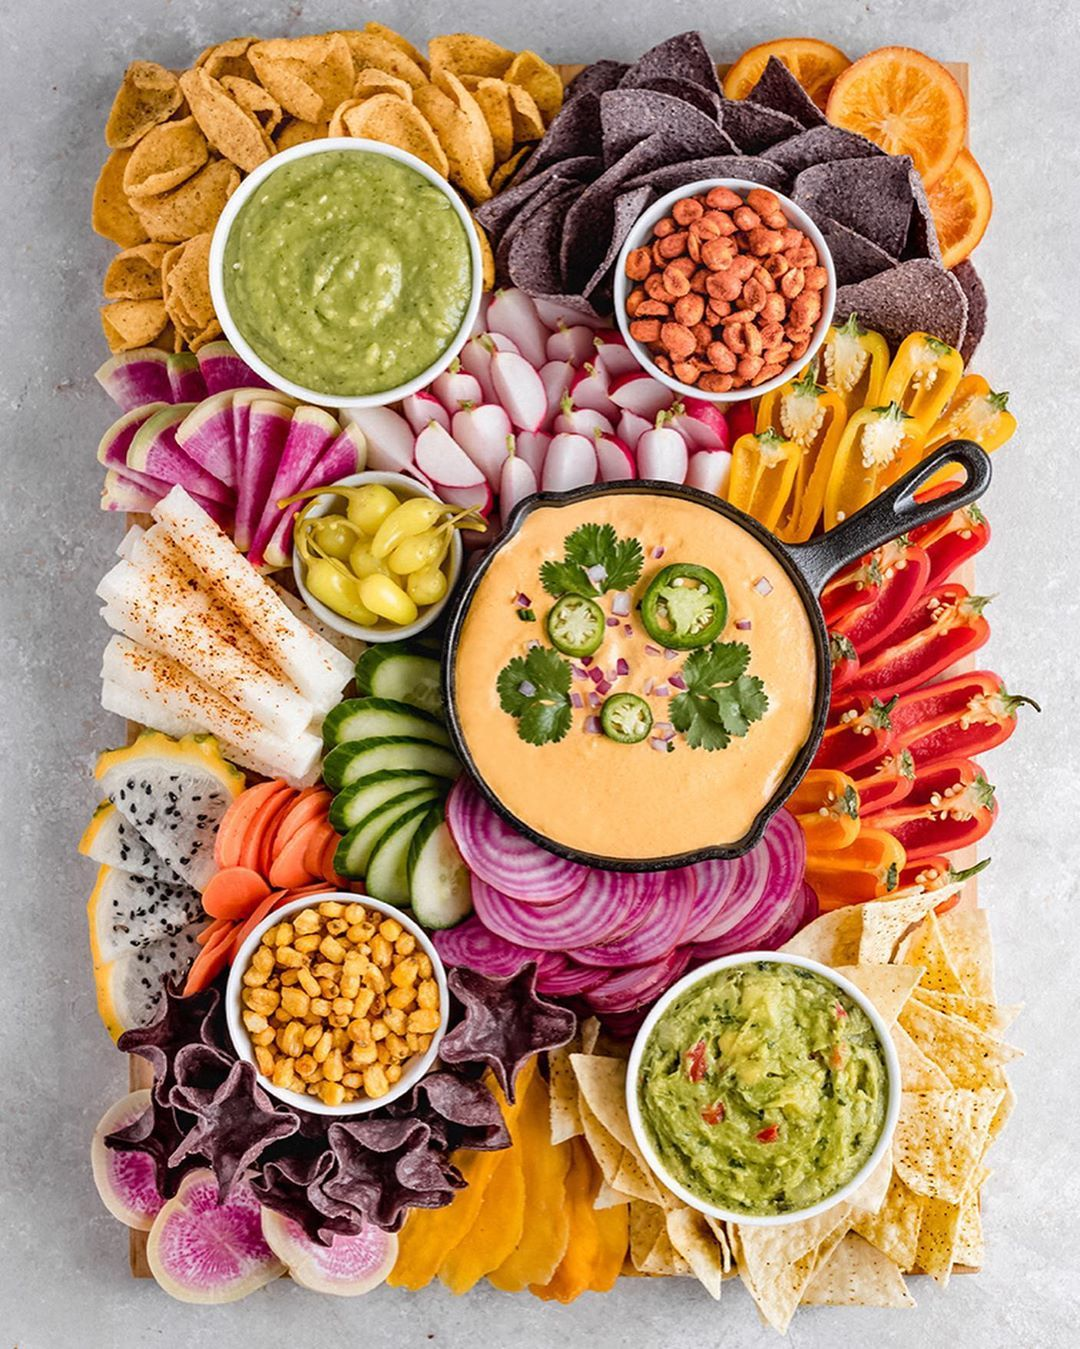 """Ain't Too Proud To Meg on Instagram: """"The bad news: It's Monday! The good news... Tomorrow's TACO TUESDAY and a fiesta board with plenty of chips, salsa & QUESO could be in your…"""""""